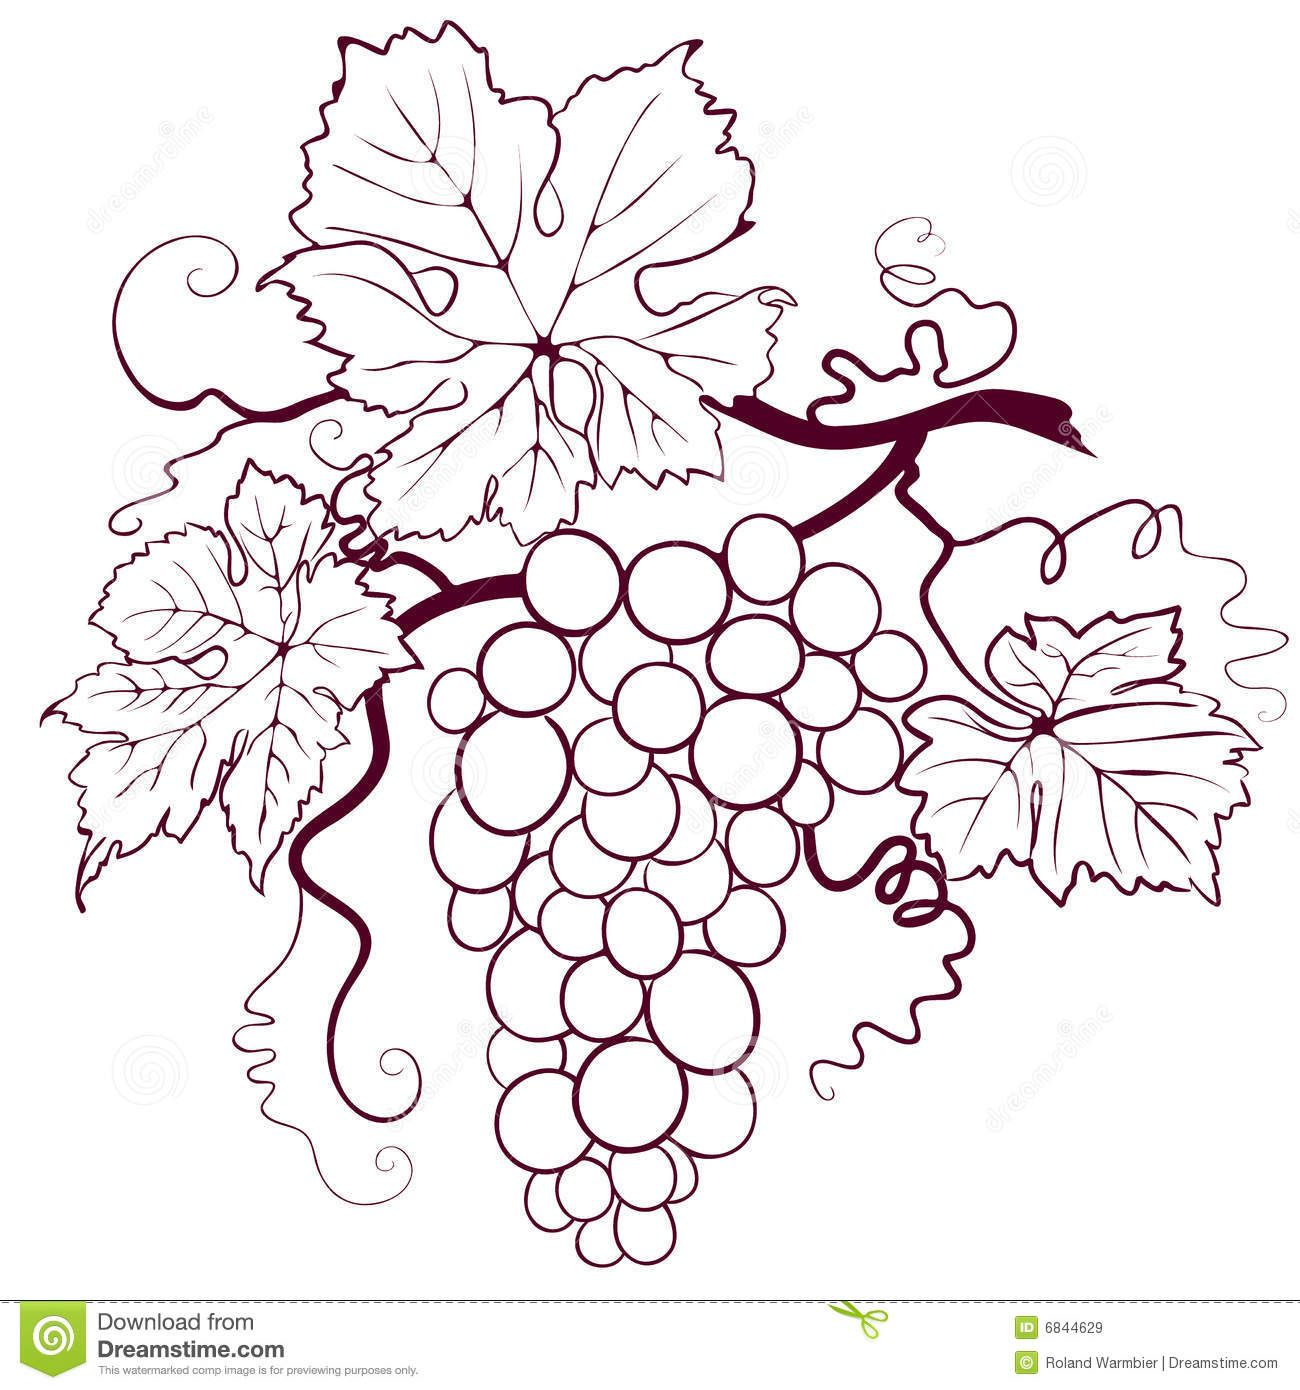 Grapes With Leaves Download From Over 46 Million High Quality Stock Photos Images Vectors Sign Up For Fre Bottle Crafts Bottle Painting Wine Bottle Crafts